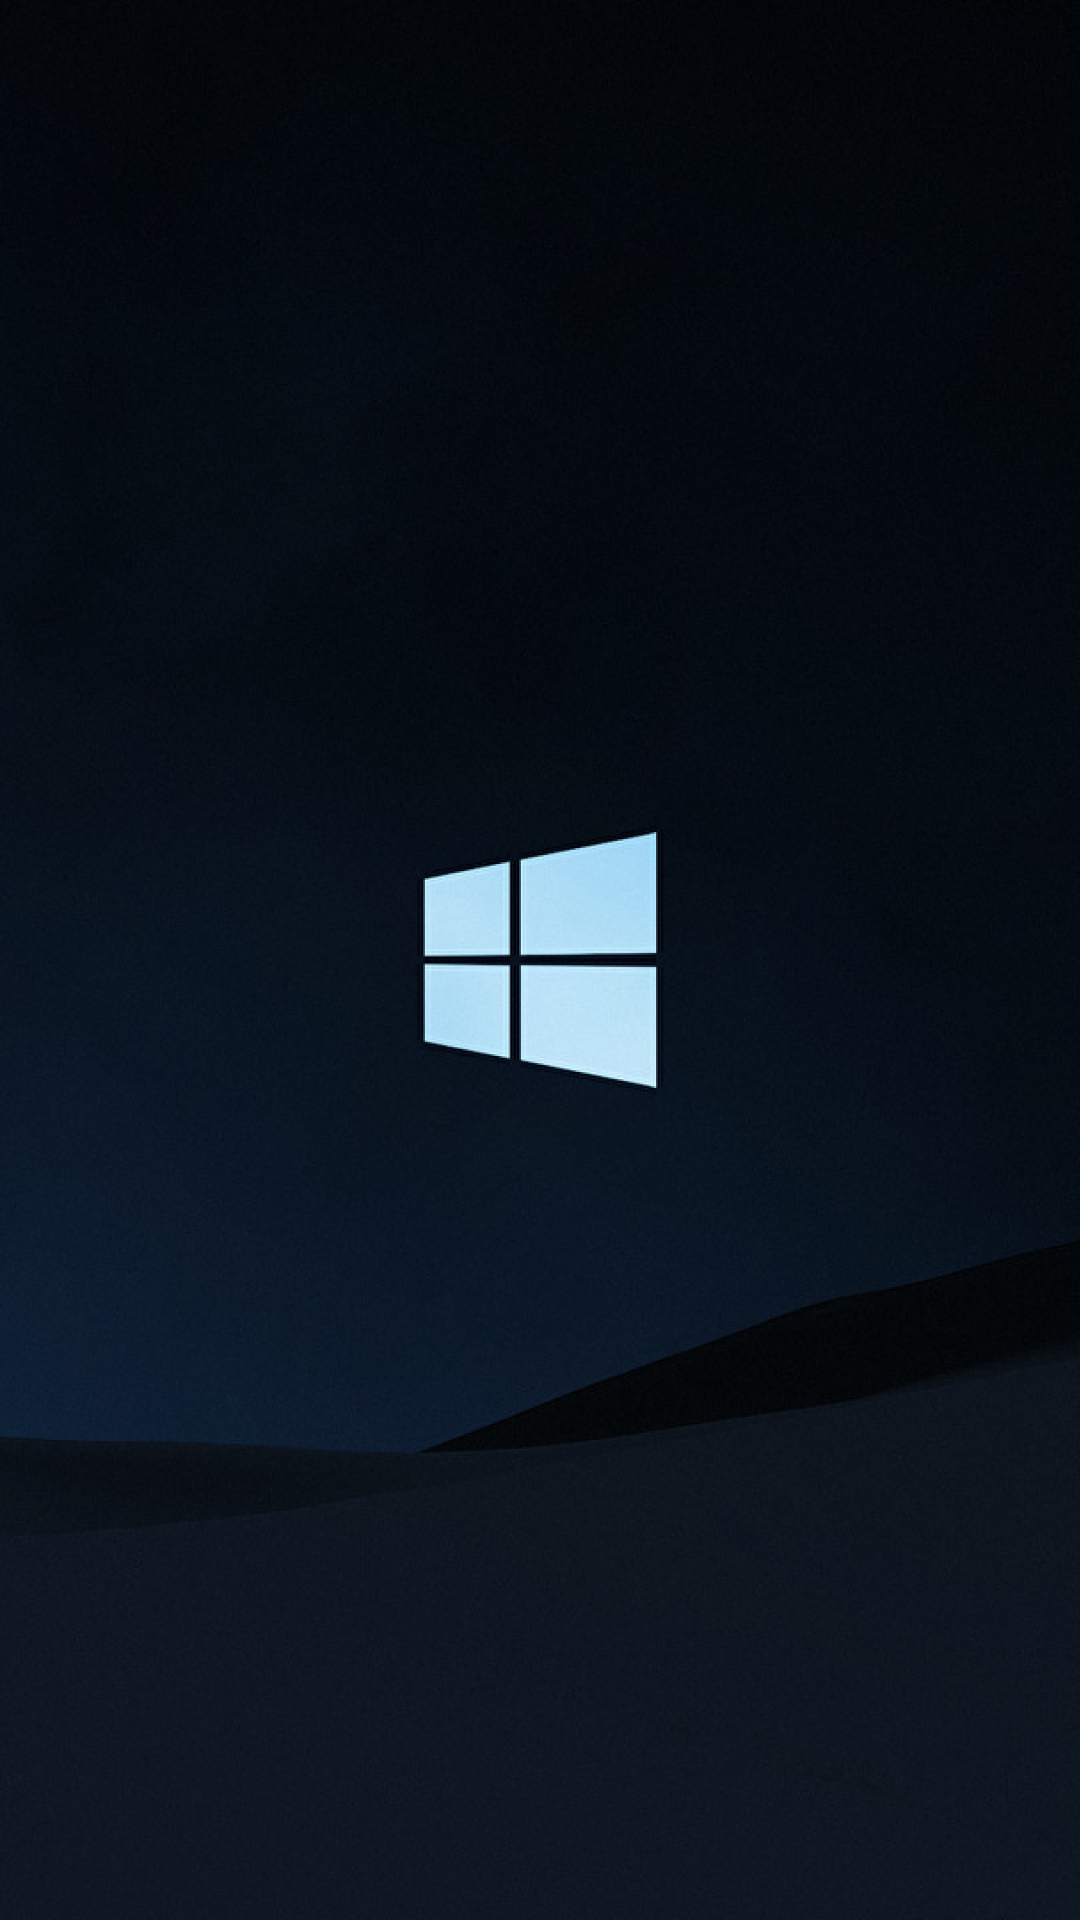 1080x1920 Windows 10 Clean Dark Iphone 7 6s 6 Plus And Pixel Xl One Plus 3 3t 5 Background Hd Brands 4k Wallpapers Images Photos And Background